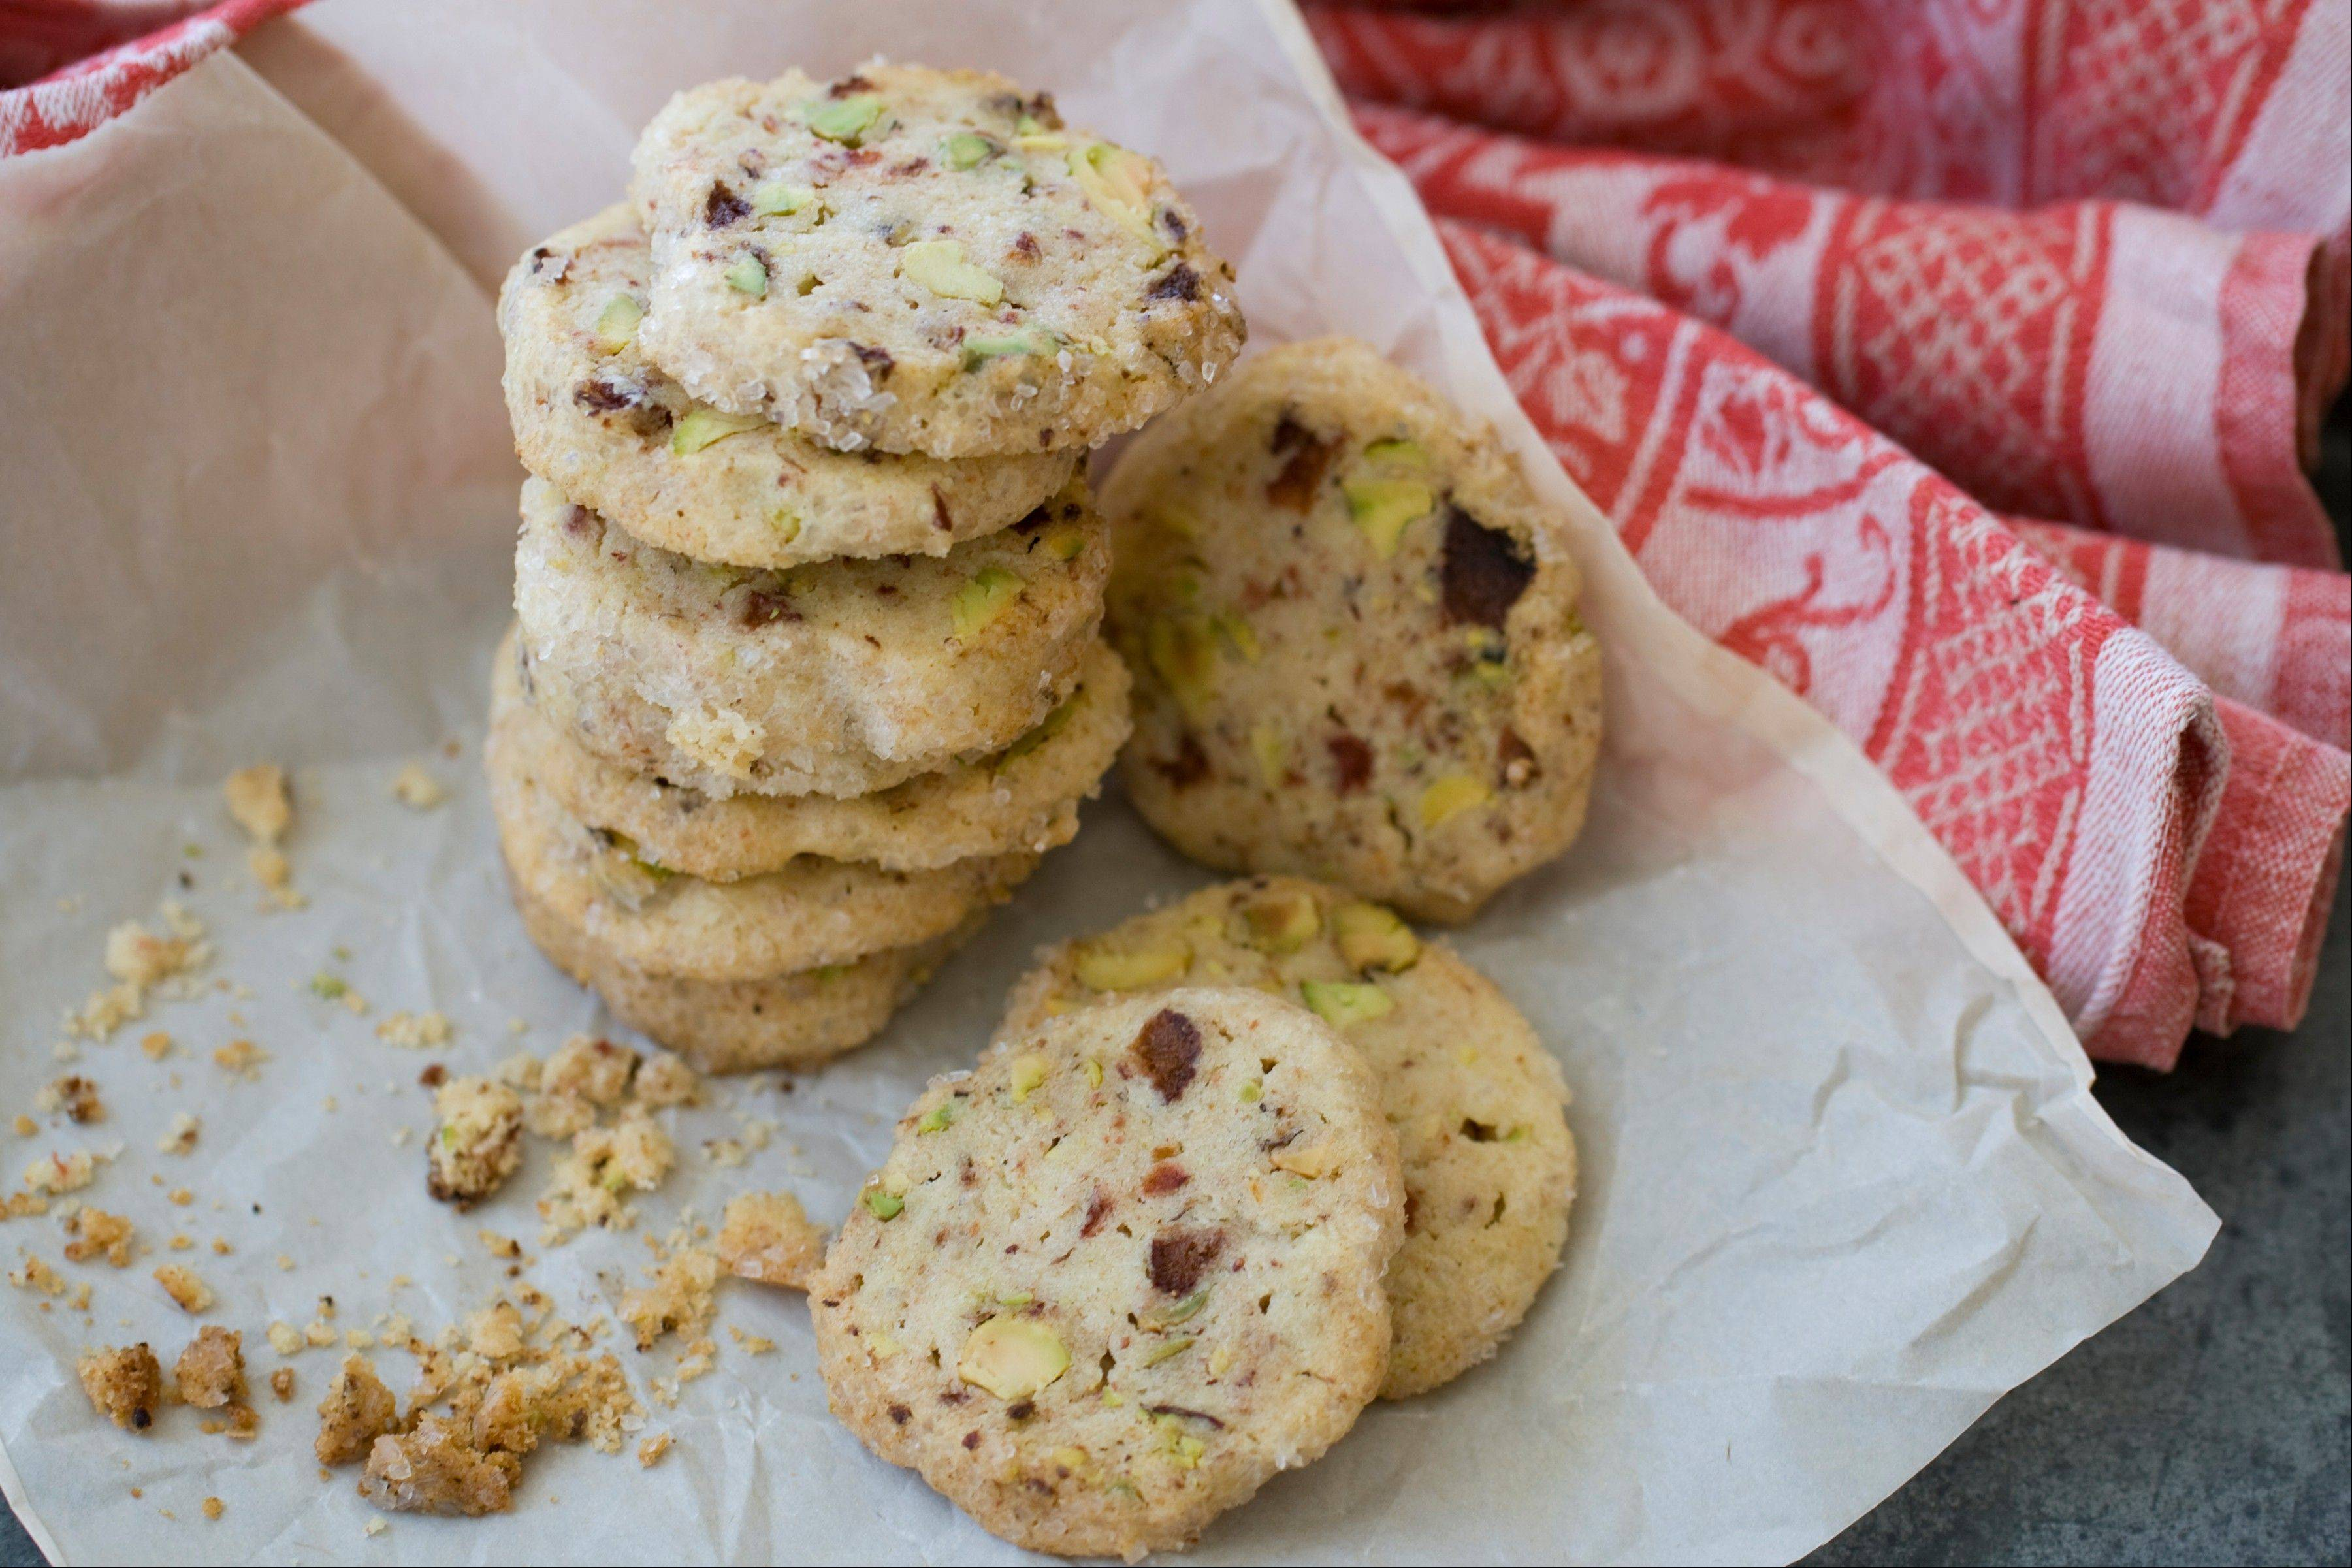 Strawberry Pistachio Icebox Cookies